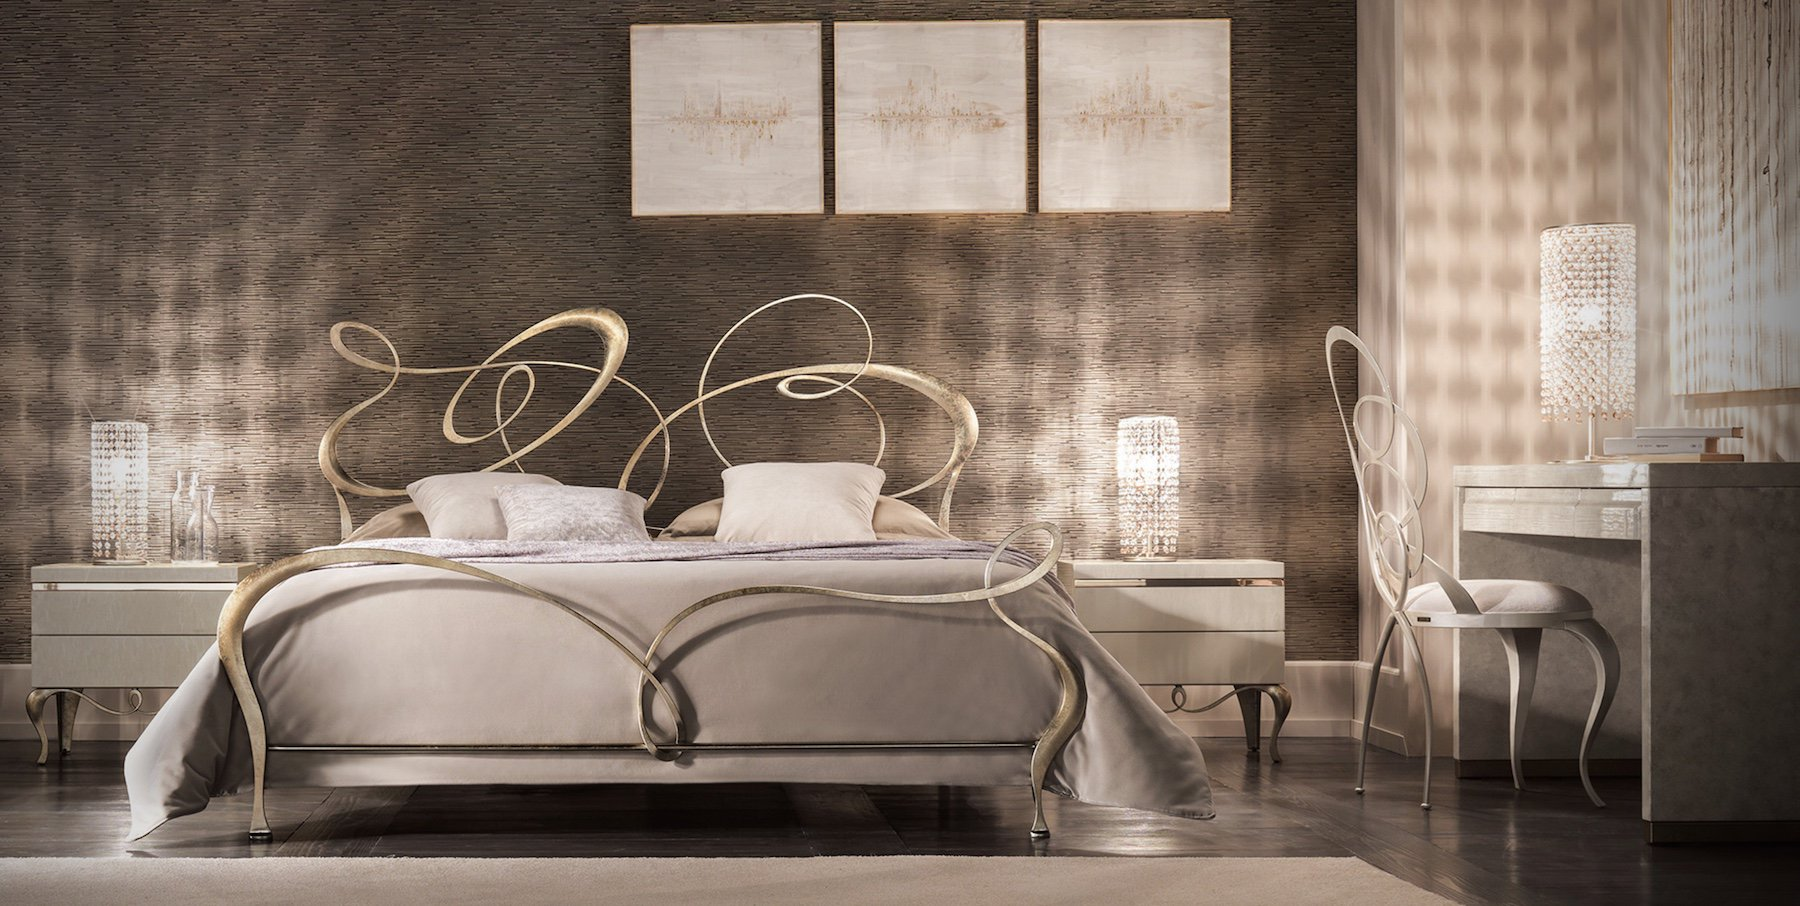 Italian designer bedroom sets veracchi mobili for Italian design mobili